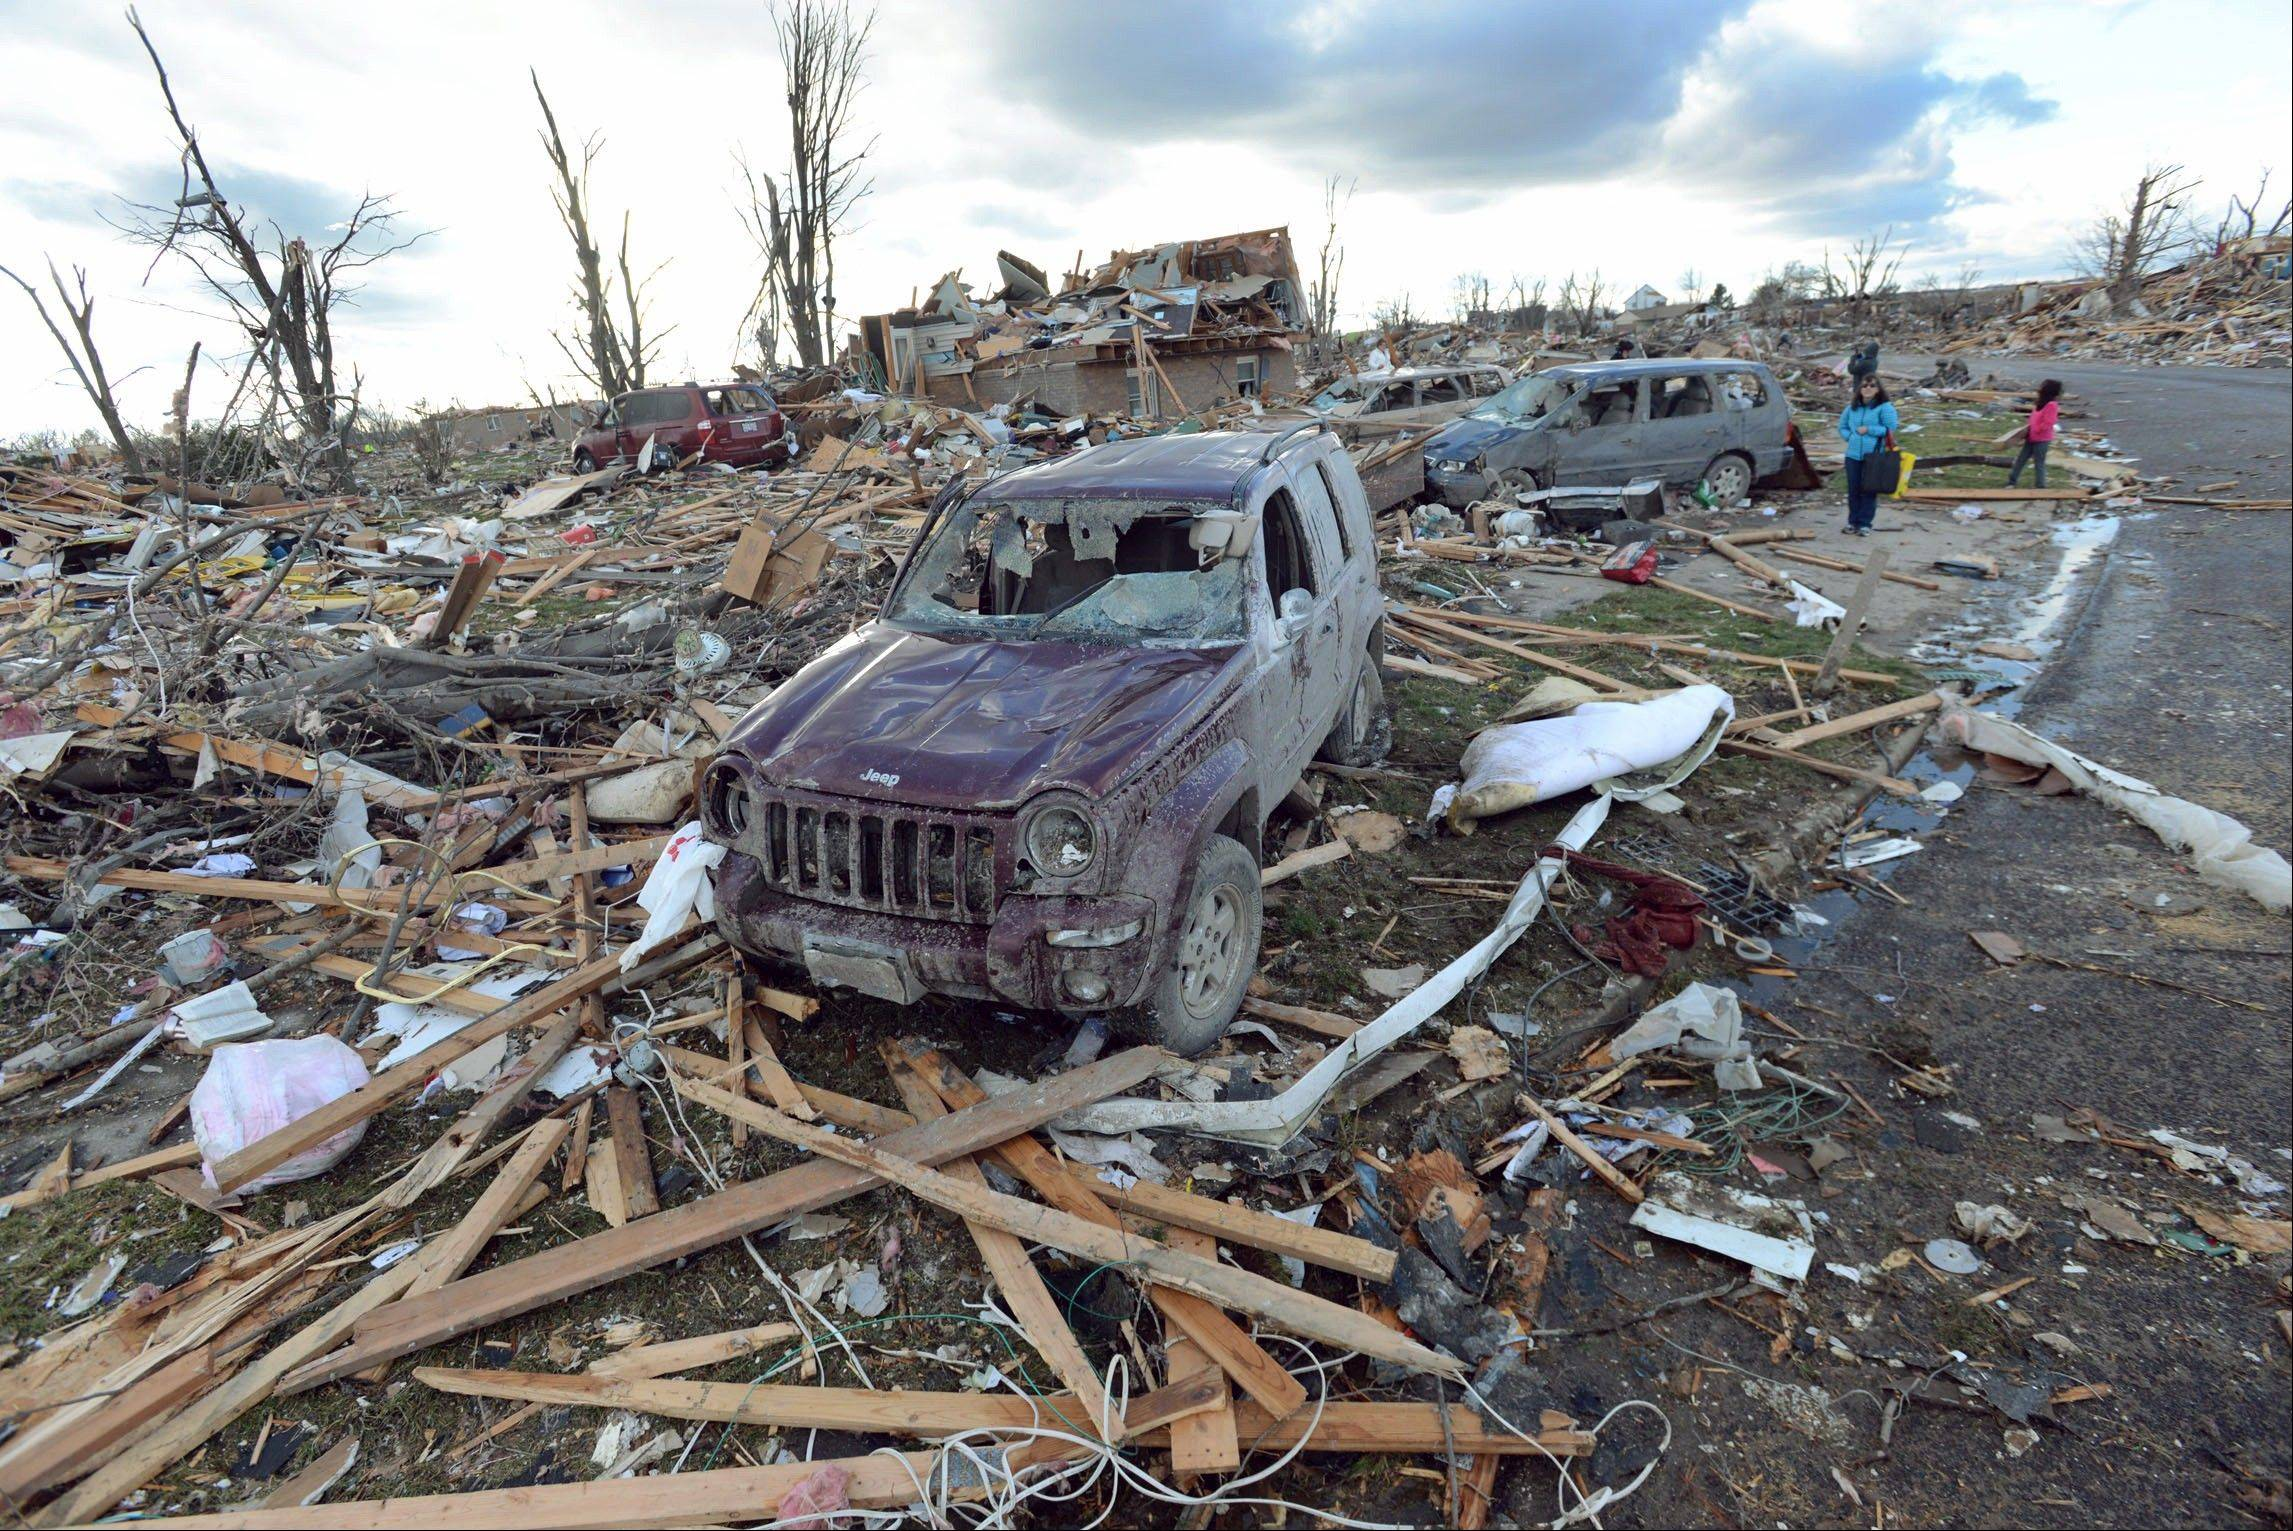 Demolished homes and vehicles in the Devonshire Subdivision in Washington, Ill., Sunday, Nov. 17, 2013. Intense thunderstorms and tornadoes swept across the Midwest, causing extensive damage in several central Illinois communities while sending people to their basements for shelter.